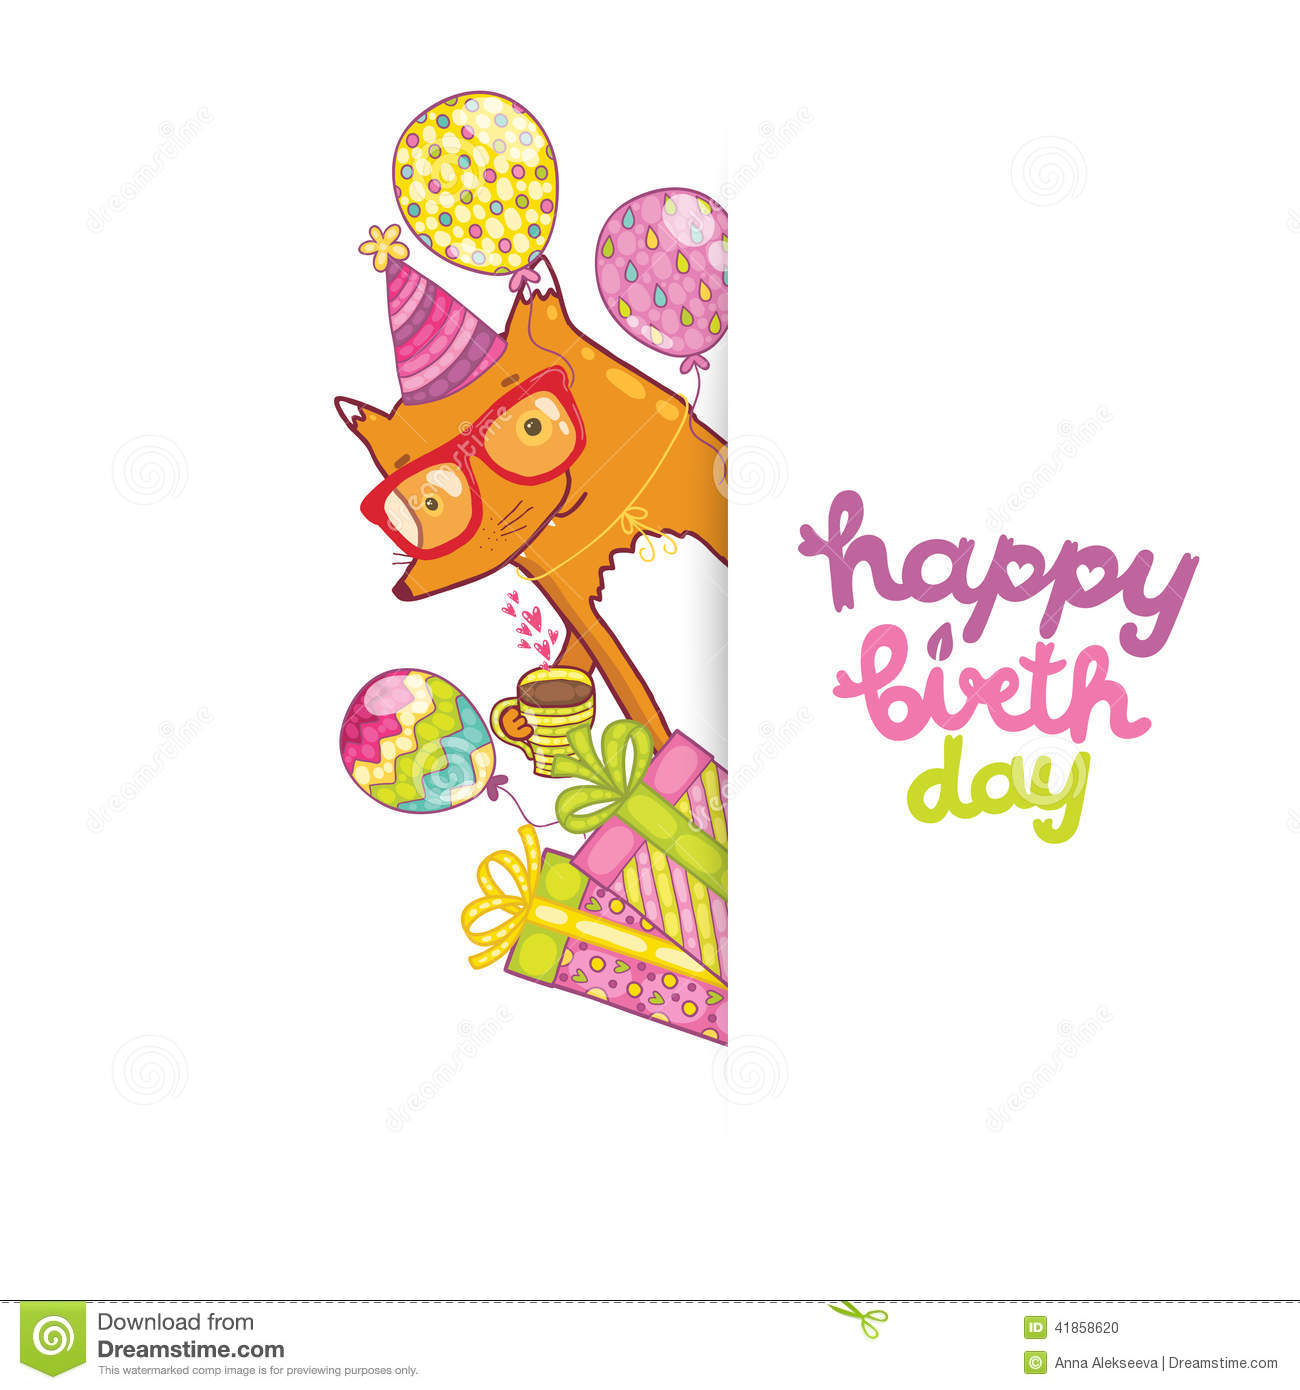 happy birthday border templates ; happy-birthday-card-hipster-fox-background-cute-cartoon-vector-holiday-party-template-greeting-postcard-image-41858620